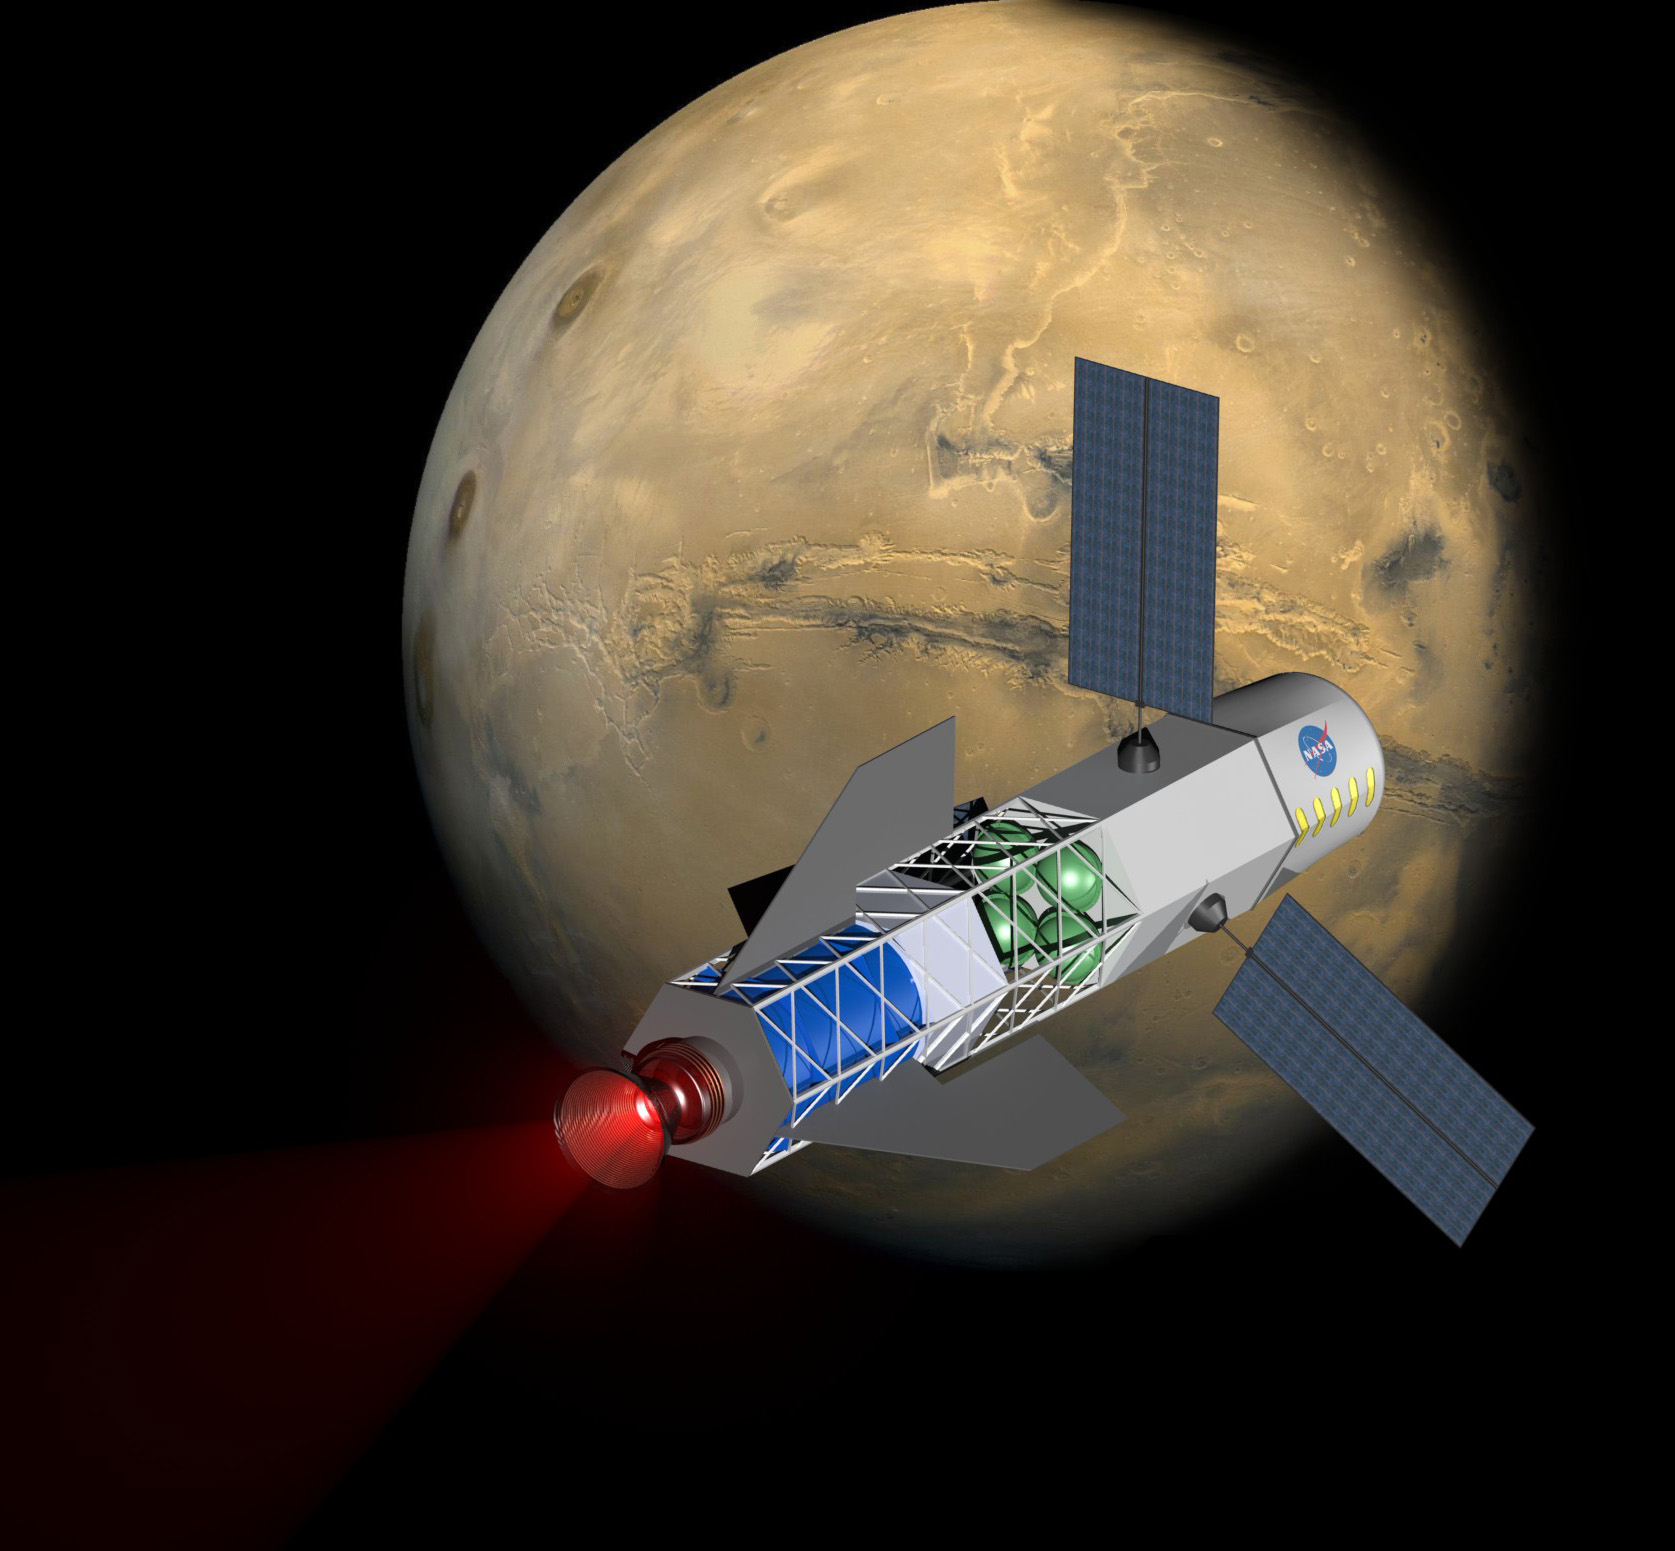 Superfast Spacecraft Propulsion Concepts (Images)